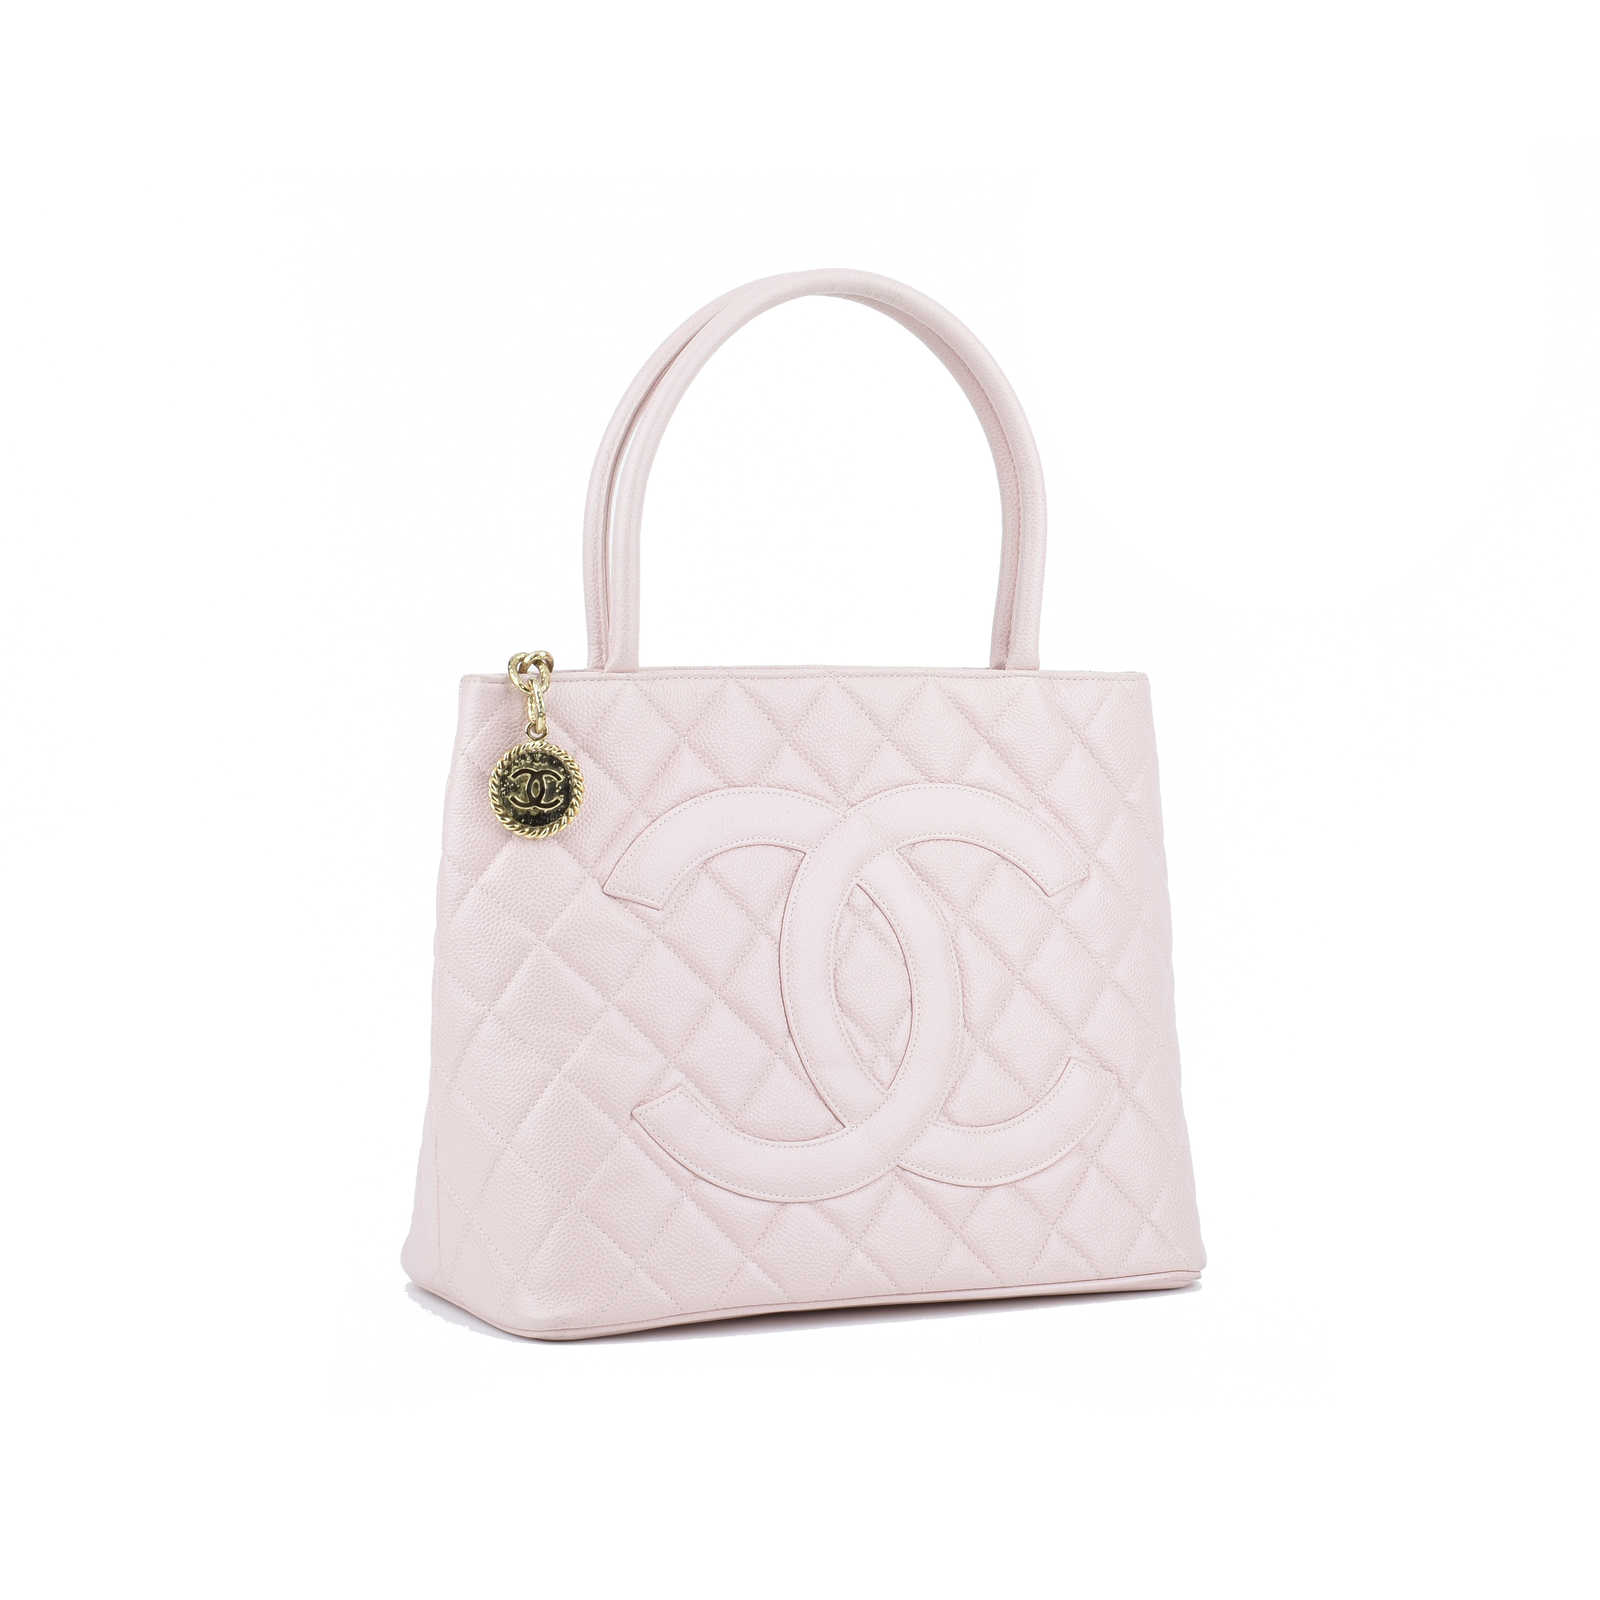 a21e64e90881 ... Authentic Second Hand Chanel Medallion Tote Bag (PSS-355-00017) -  Thumbnail ...